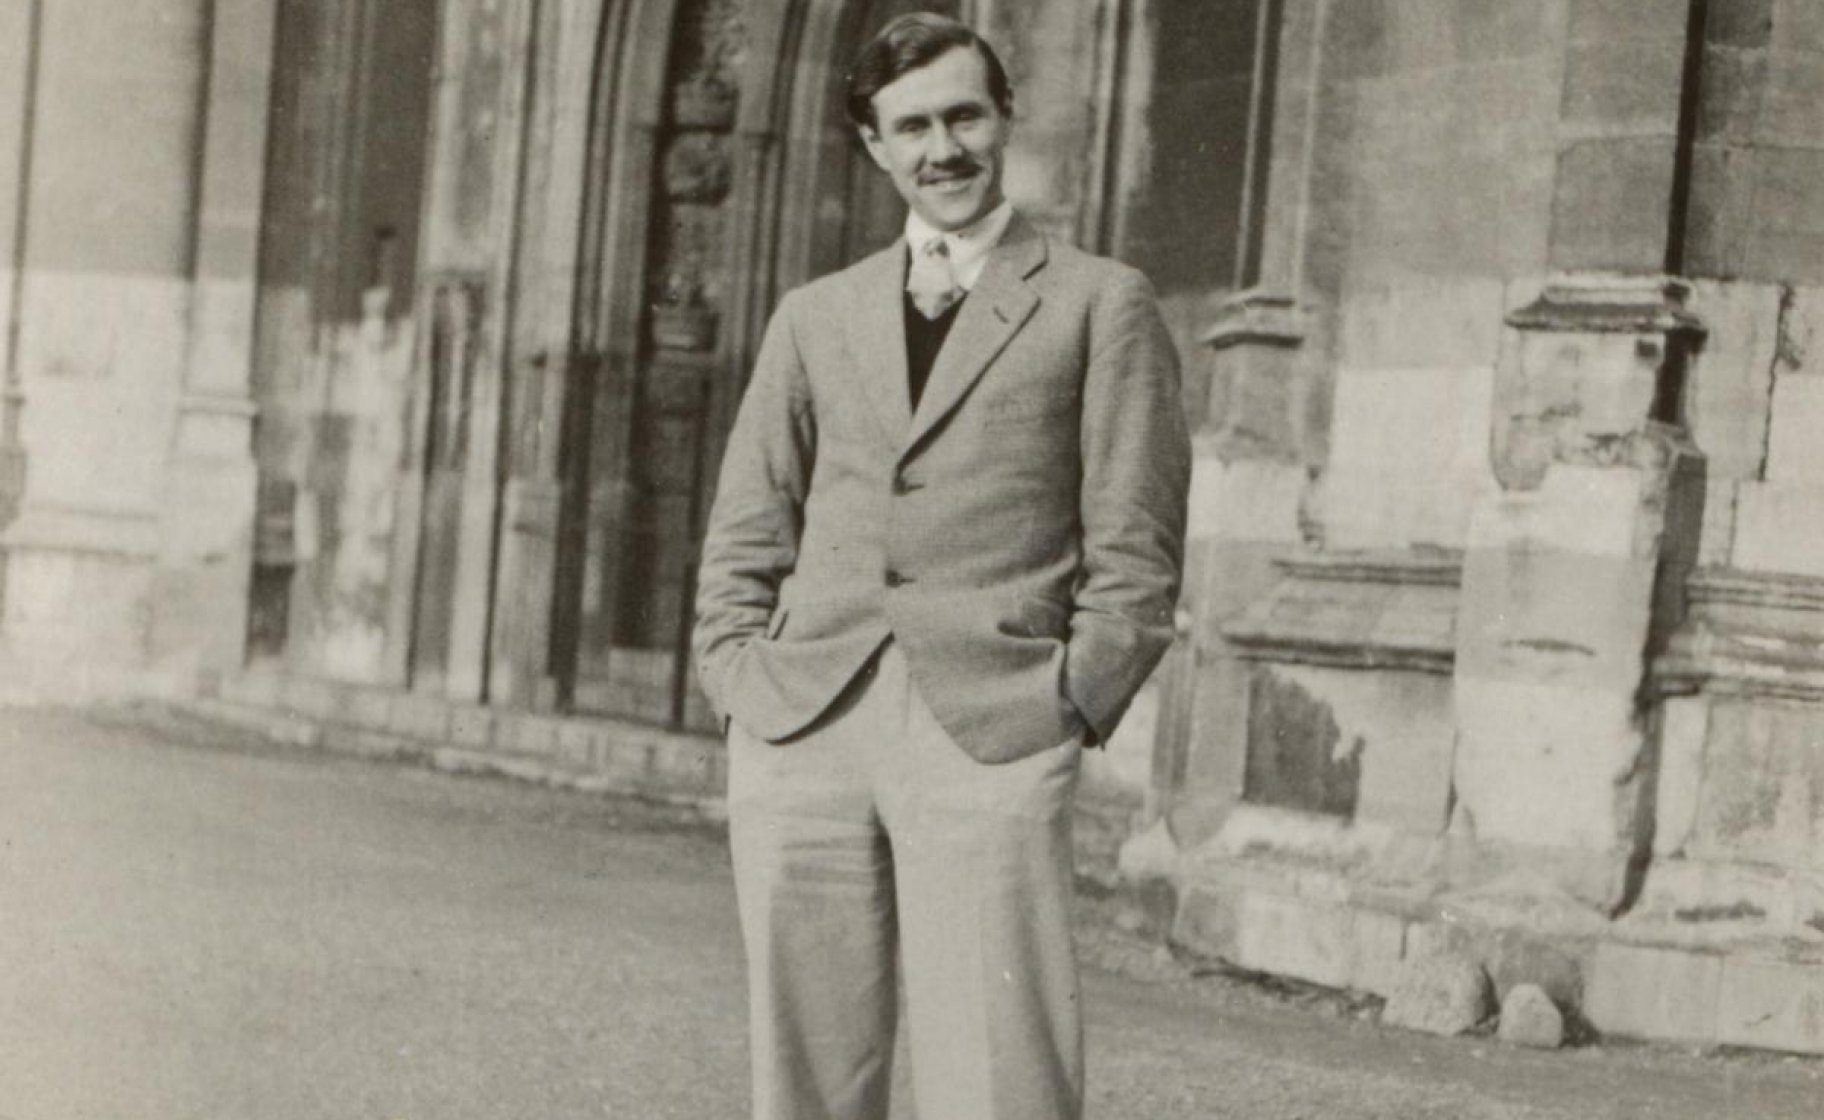 Patrick White at Cambridge in the early 1930s. National Library of Australia